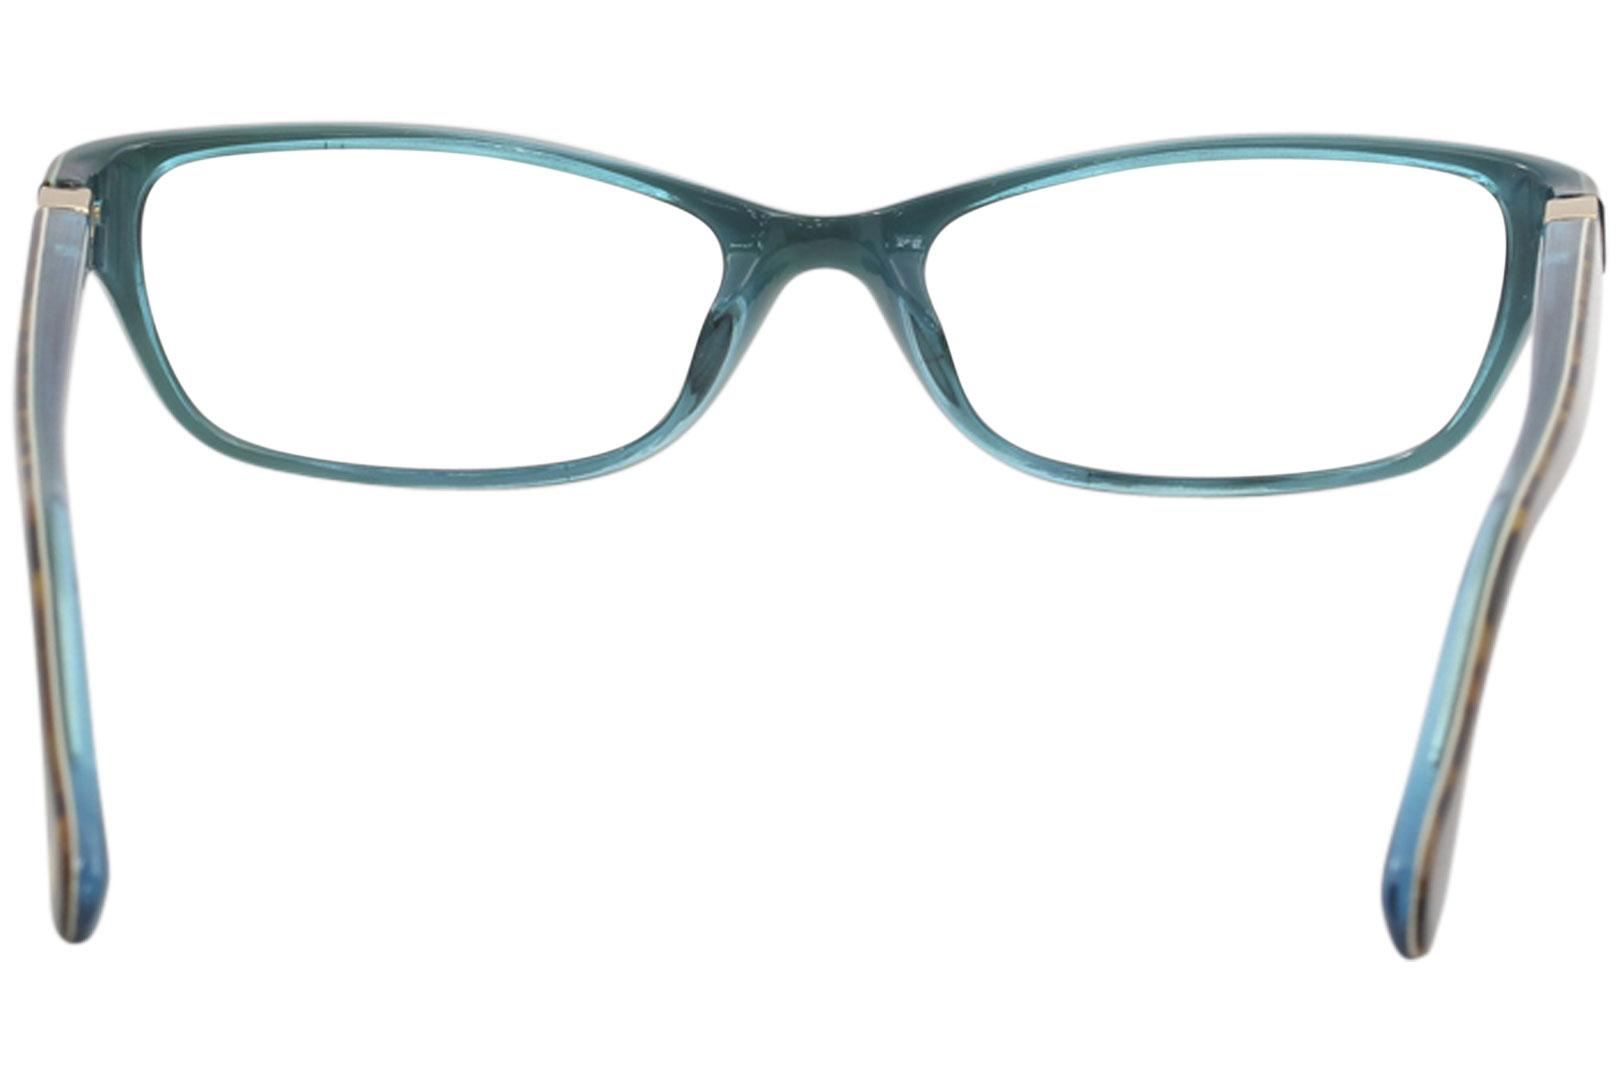 ddd434e009 Lilly Pulitzer Women s Eyeglasses Sally Full Rim Optical Frame by Lilly  Pulitzer. 12345